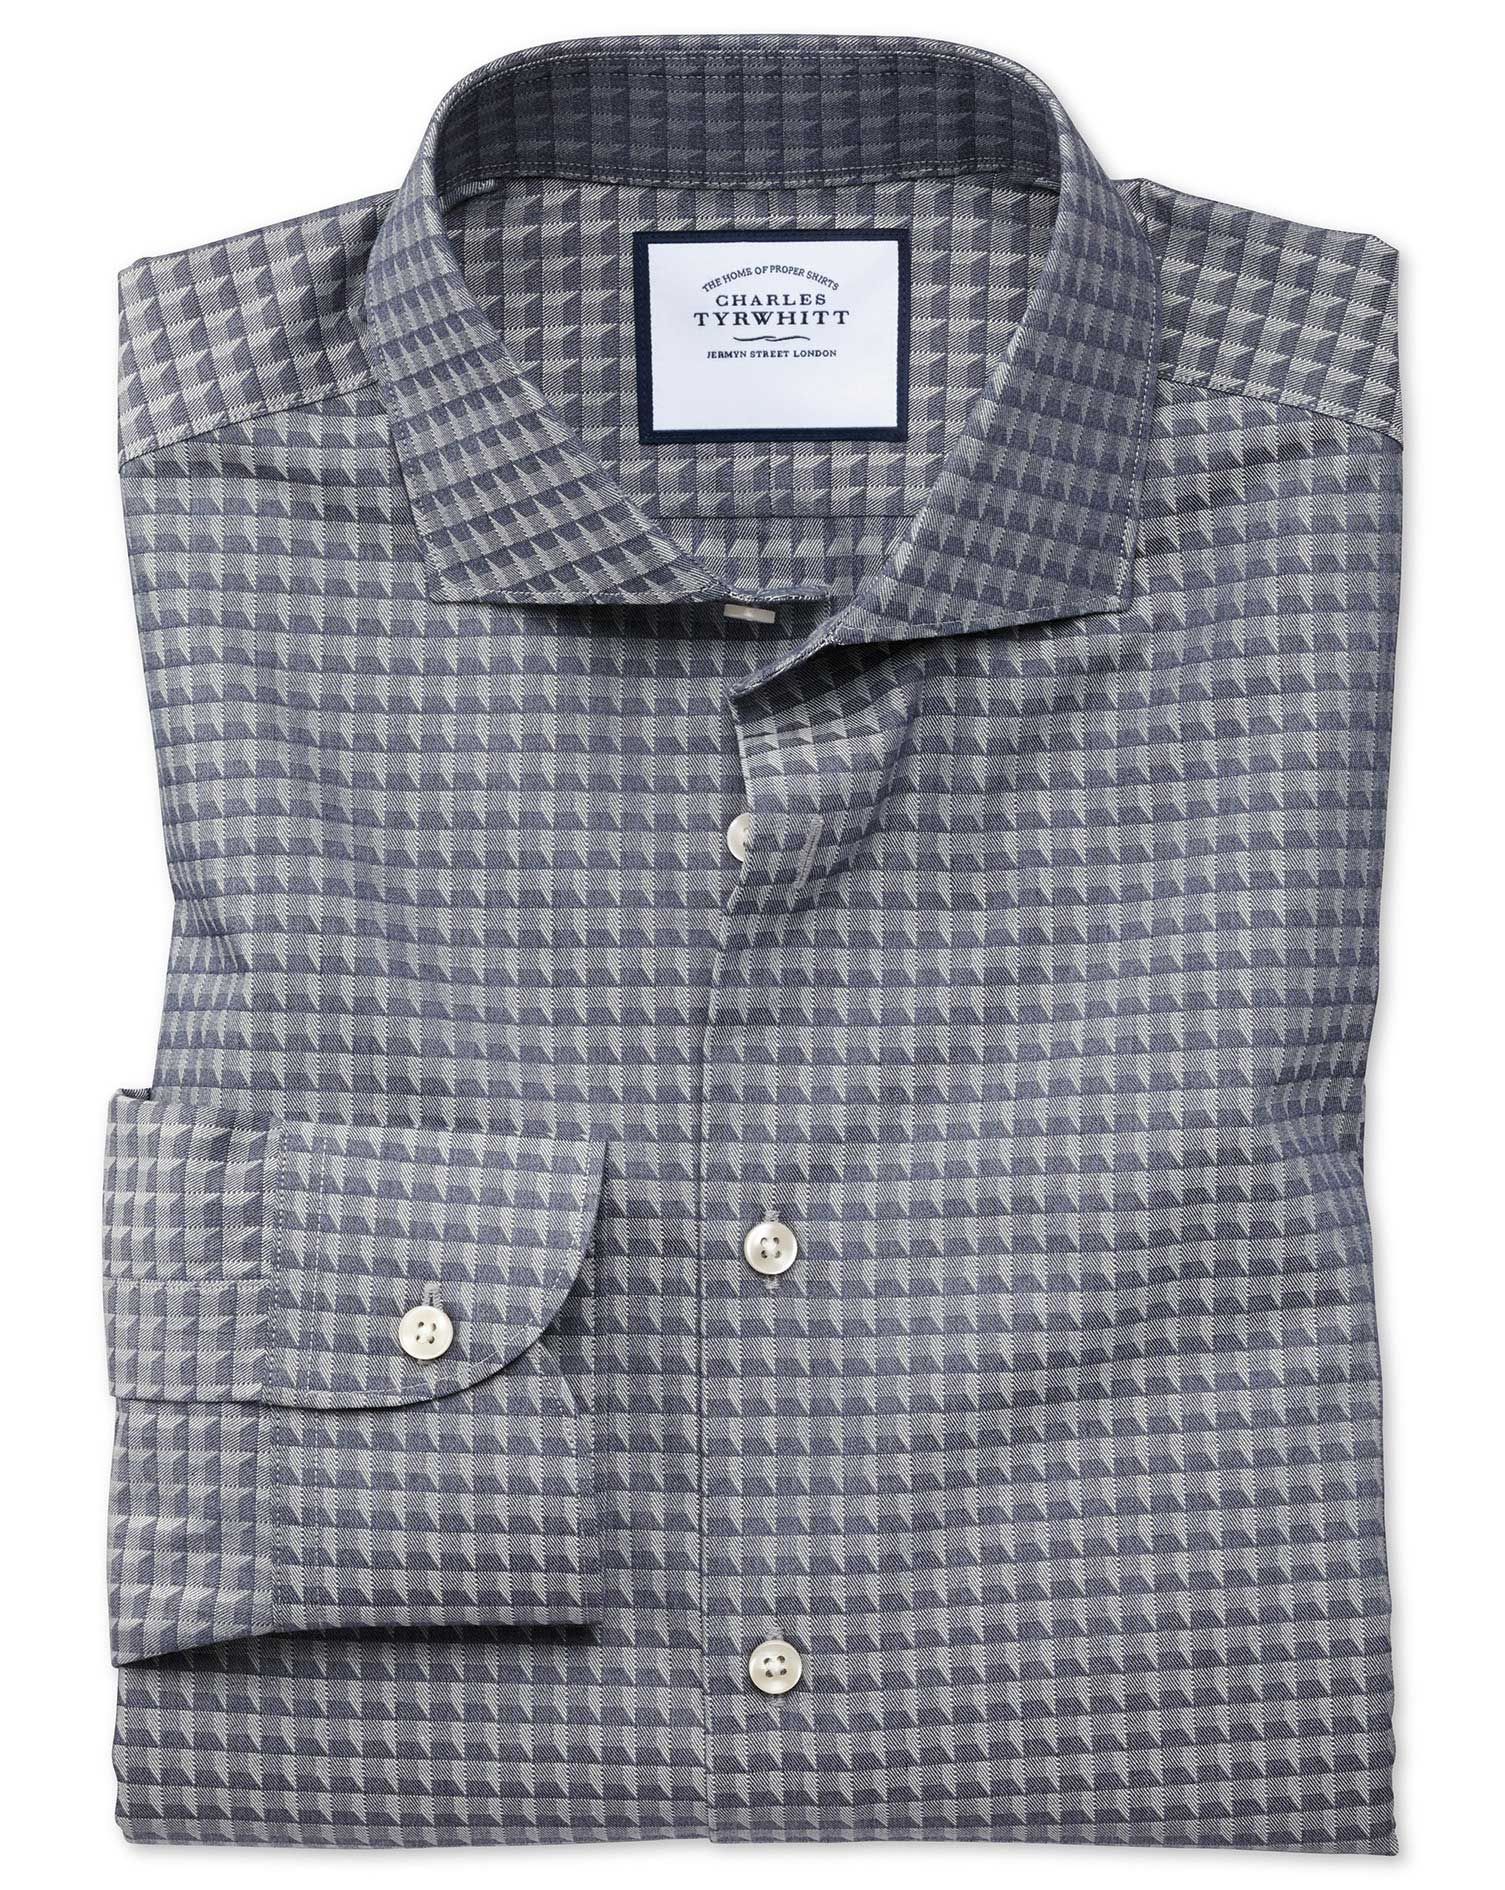 Classic Fit Business Casual Navy Geometric Cotton Formal Shirt Single Cuff Size 17/34 by Charles Tyr